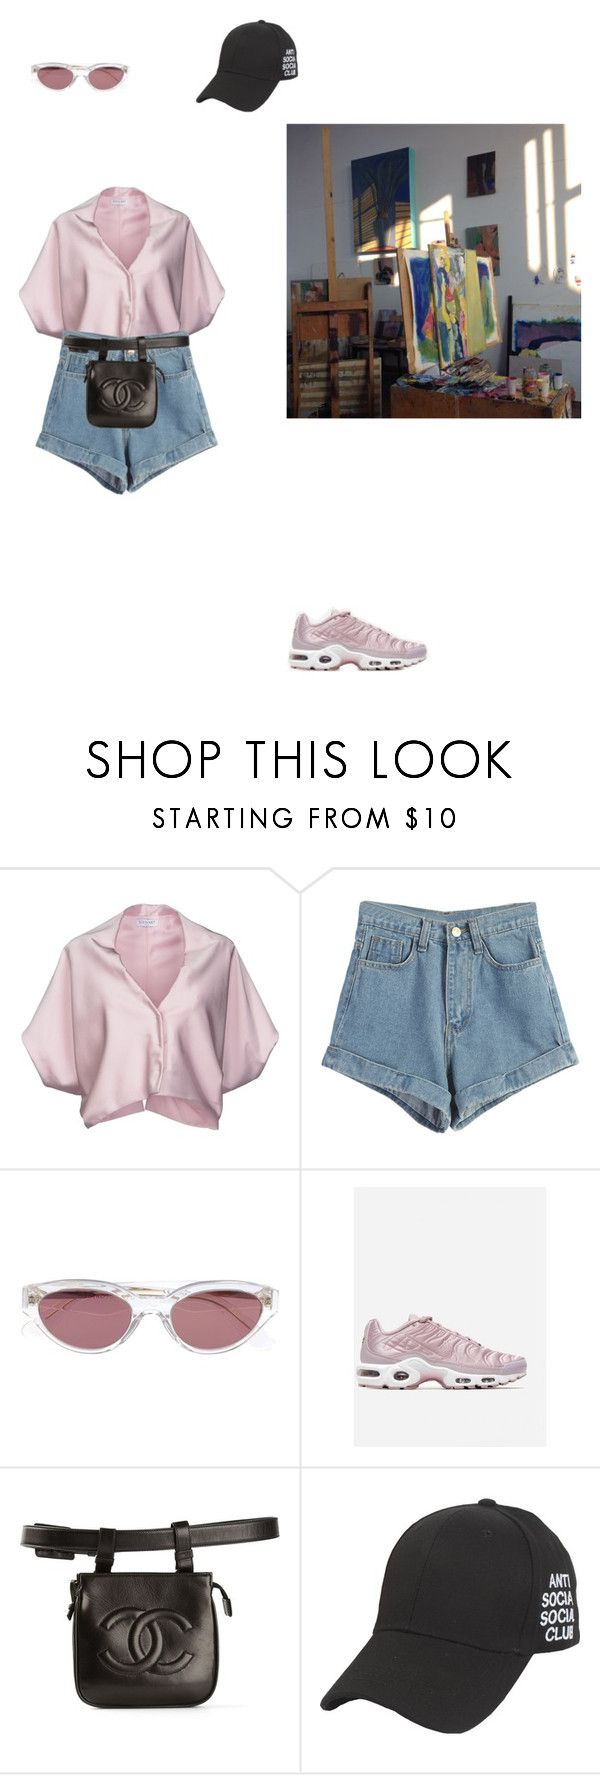 """""""Без названия #24"""" by vorls ❤ liked on Polyvore featuring Vionnet, WithChic, RetroSuperFuture, Chanel, jeanshorts, denimshorts and cutoffs"""